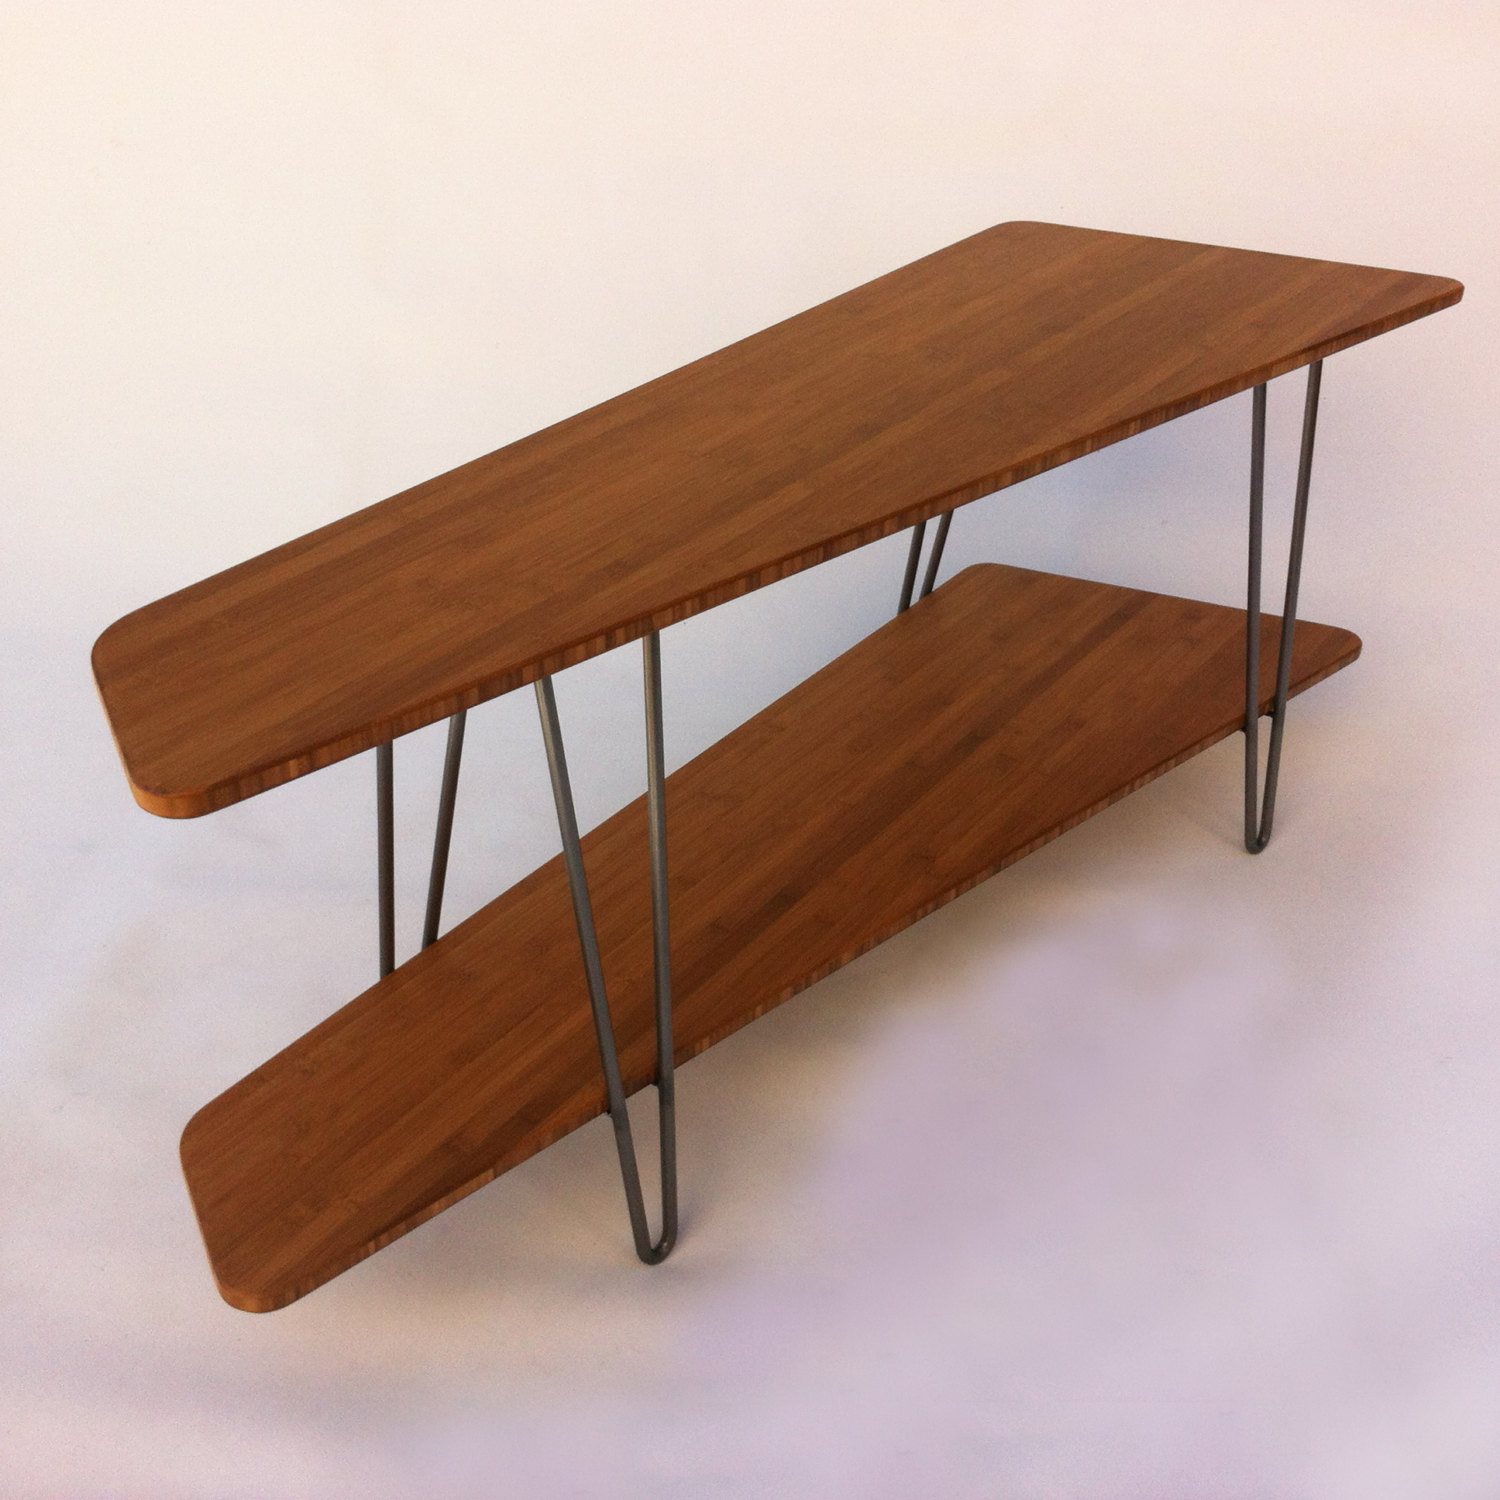 Contemporary Mid Century Modern TV Stand Media Console With Shelf U2013 Low Hall  Table In Caramelized Bamboo On Hairpin Legs